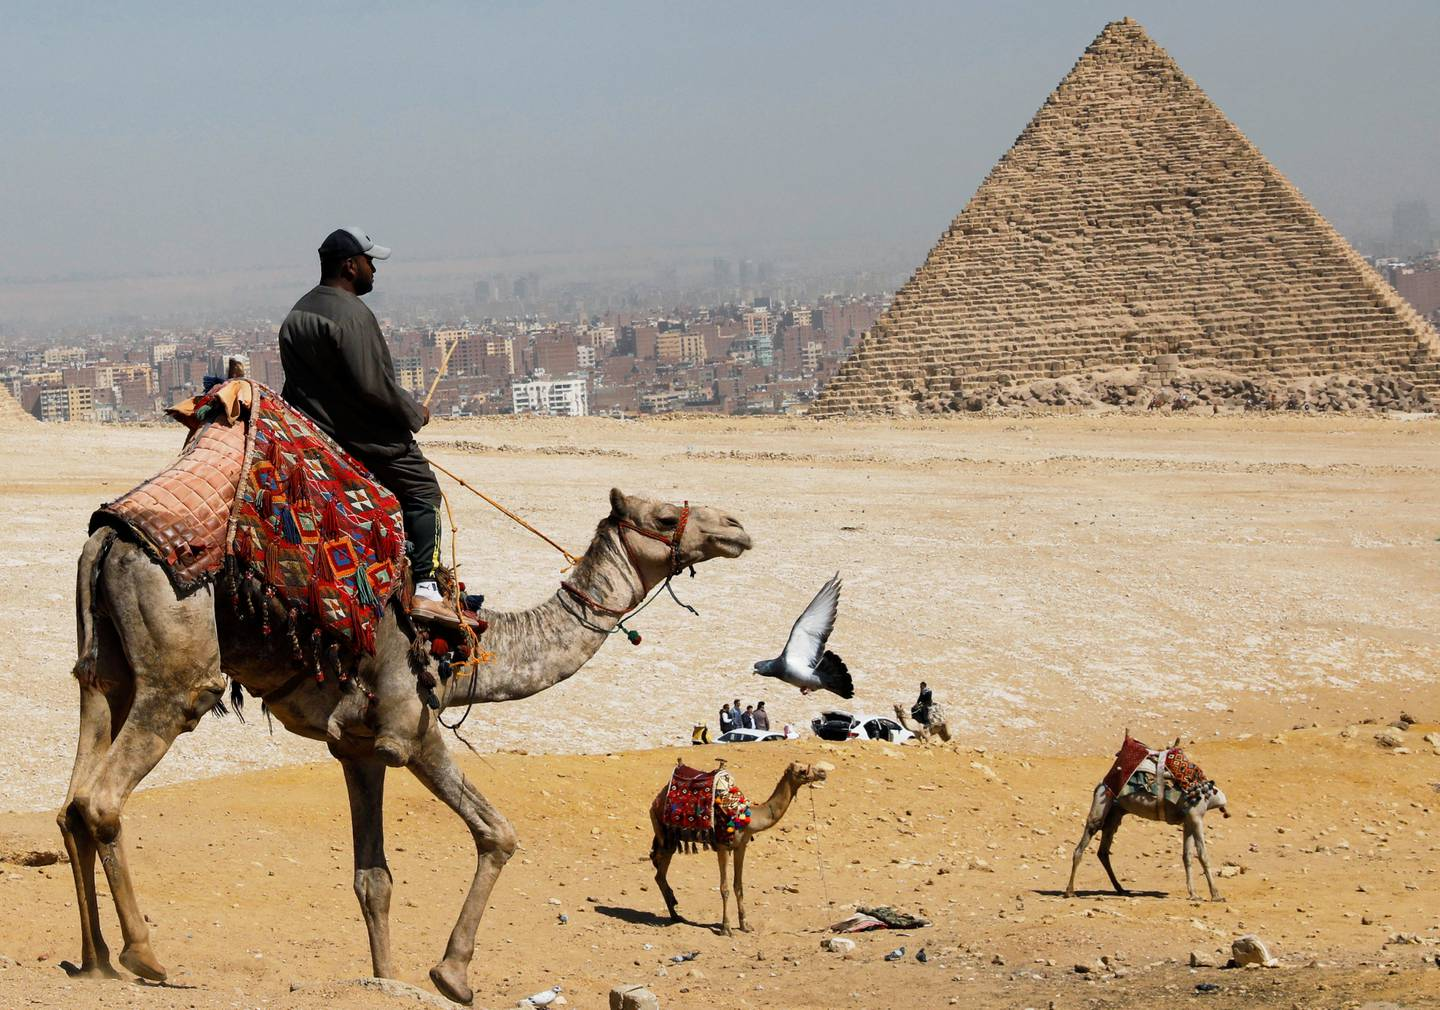 A man waits for tourists to rent his camels in front of the Great Pyramids of Giza, on the outskirts of Cairo, Egypt March 8, 2020. REUTERS/Mohamed Abd El Ghany